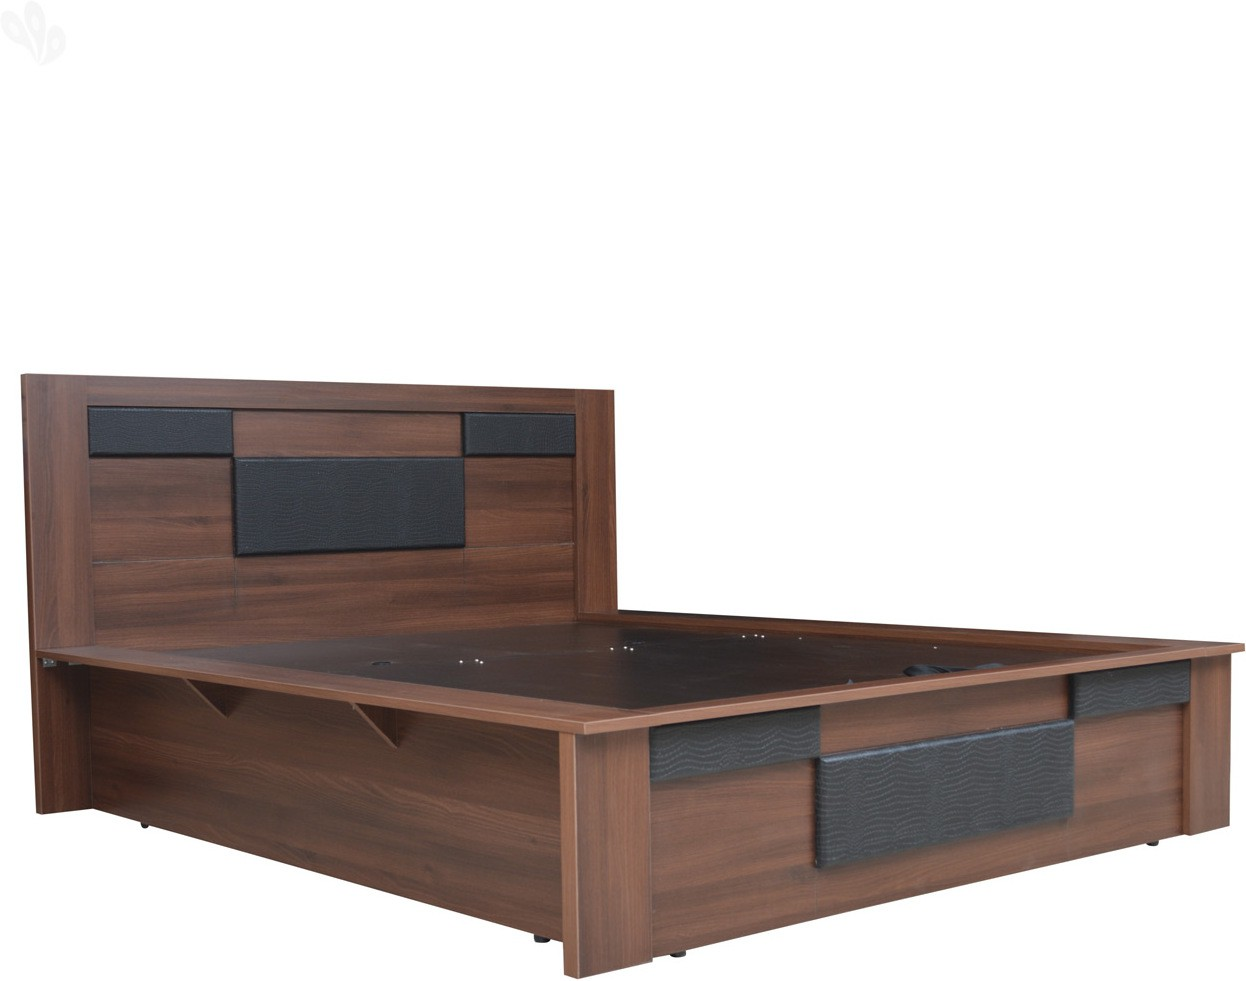 View Crystal Furnitech Engineered Wood King Bed With Storage(Finish Color -  Dark) Furniture (Crystal Furnitech)